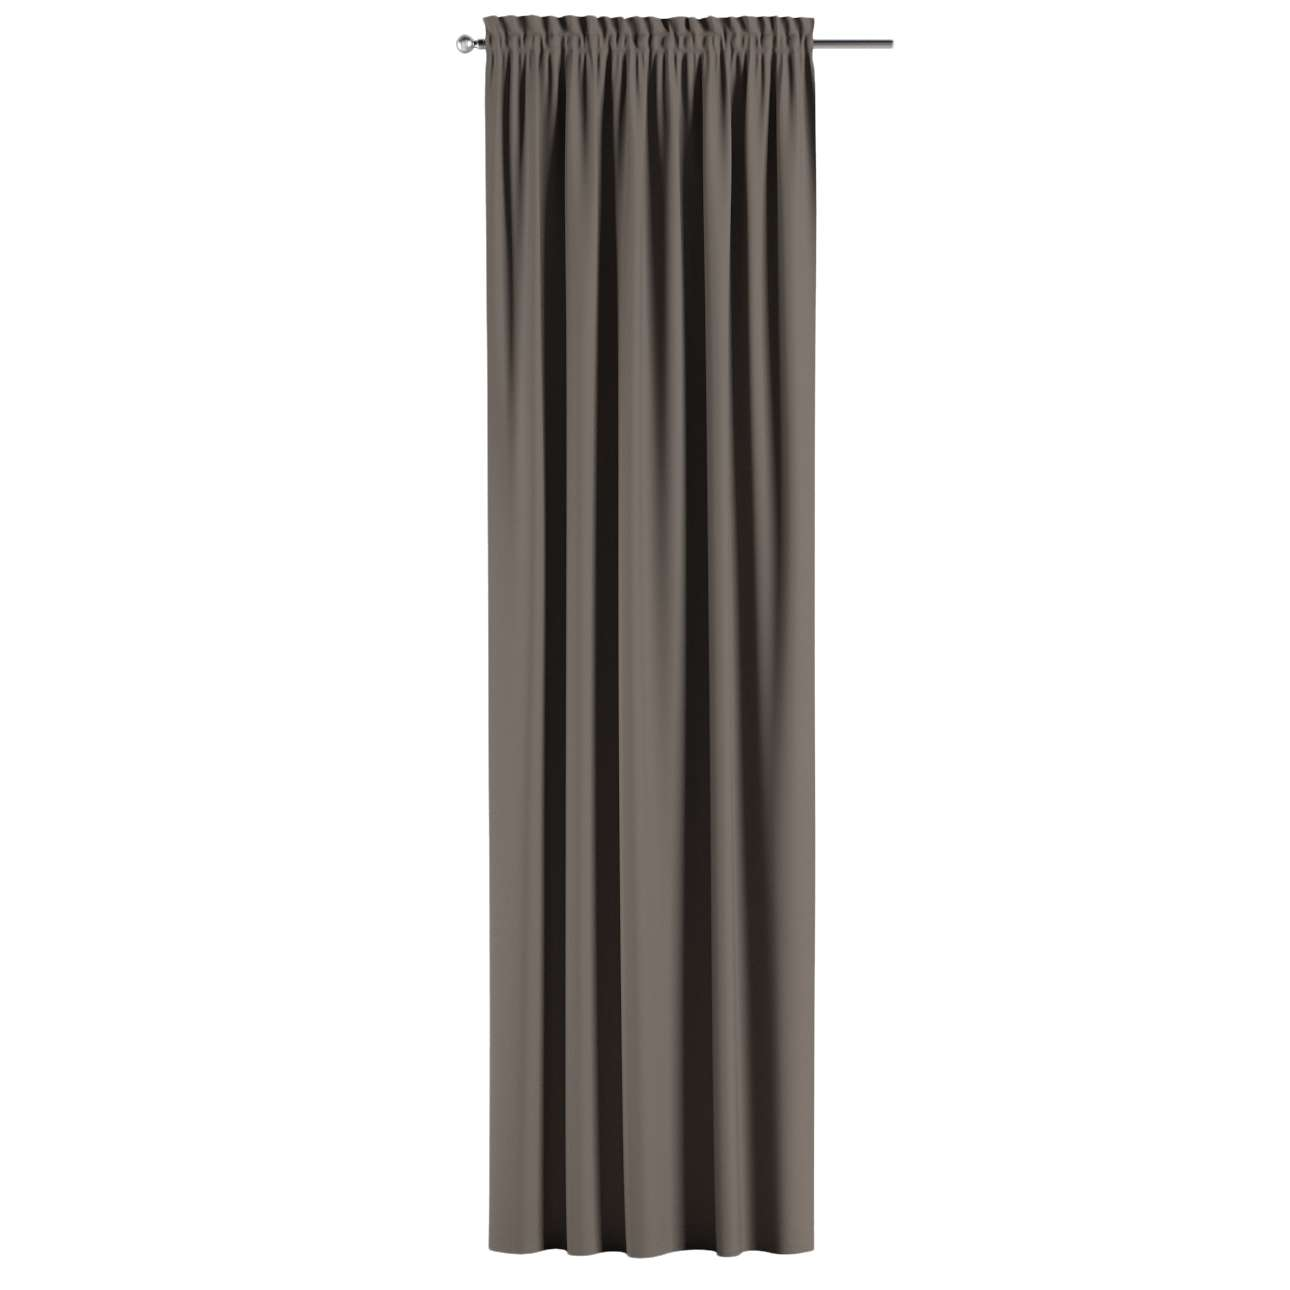 Blackout slot and frill curtains 140 x 260 cm (approx. 55 x 102 inch) in collection Blackout, fabric: 269-80